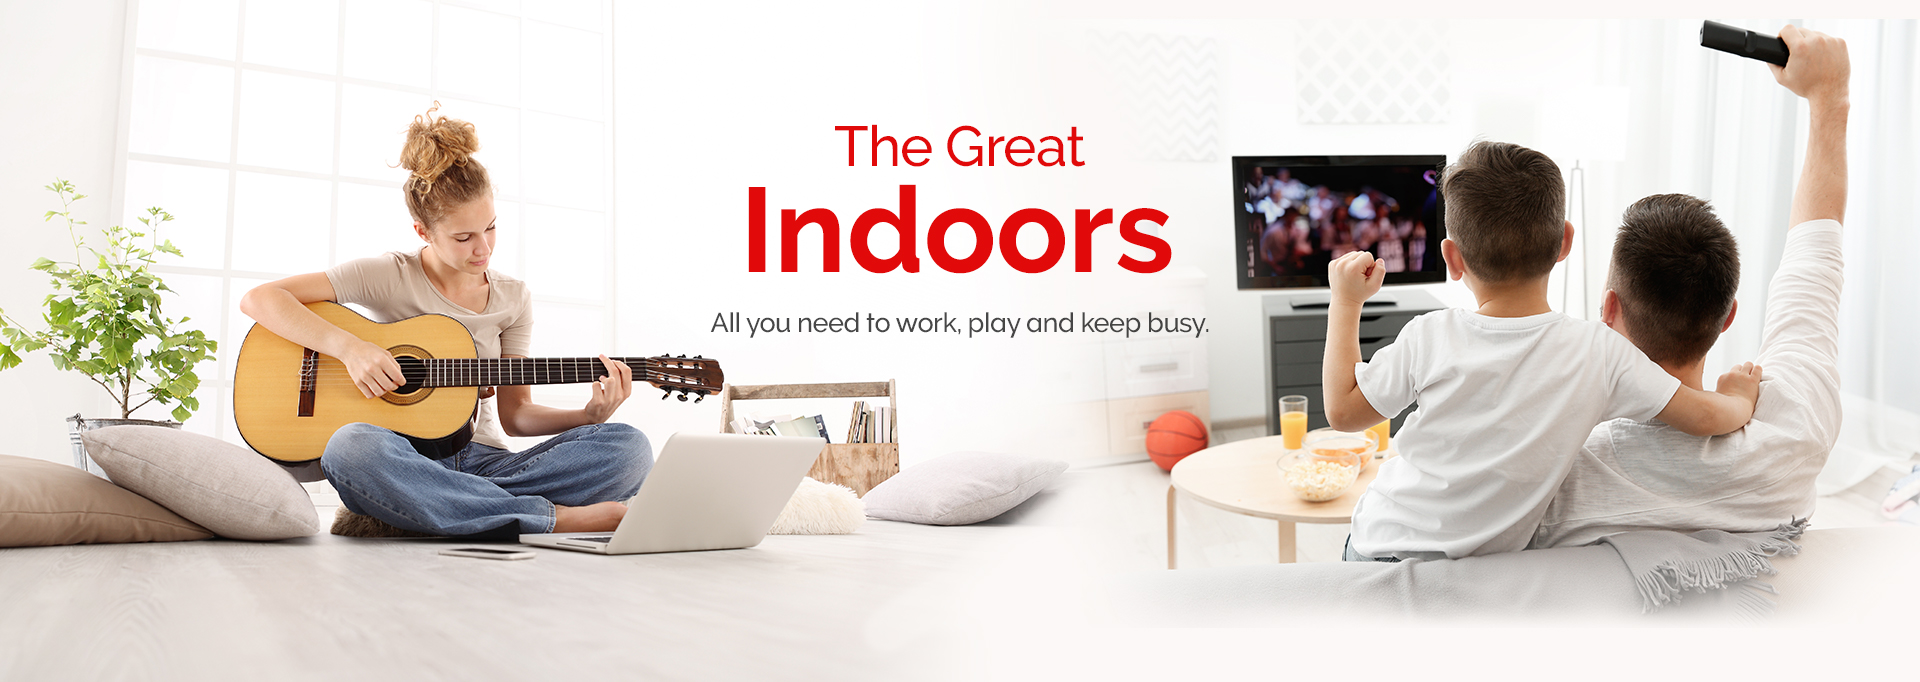 The Great Indoors.jpg